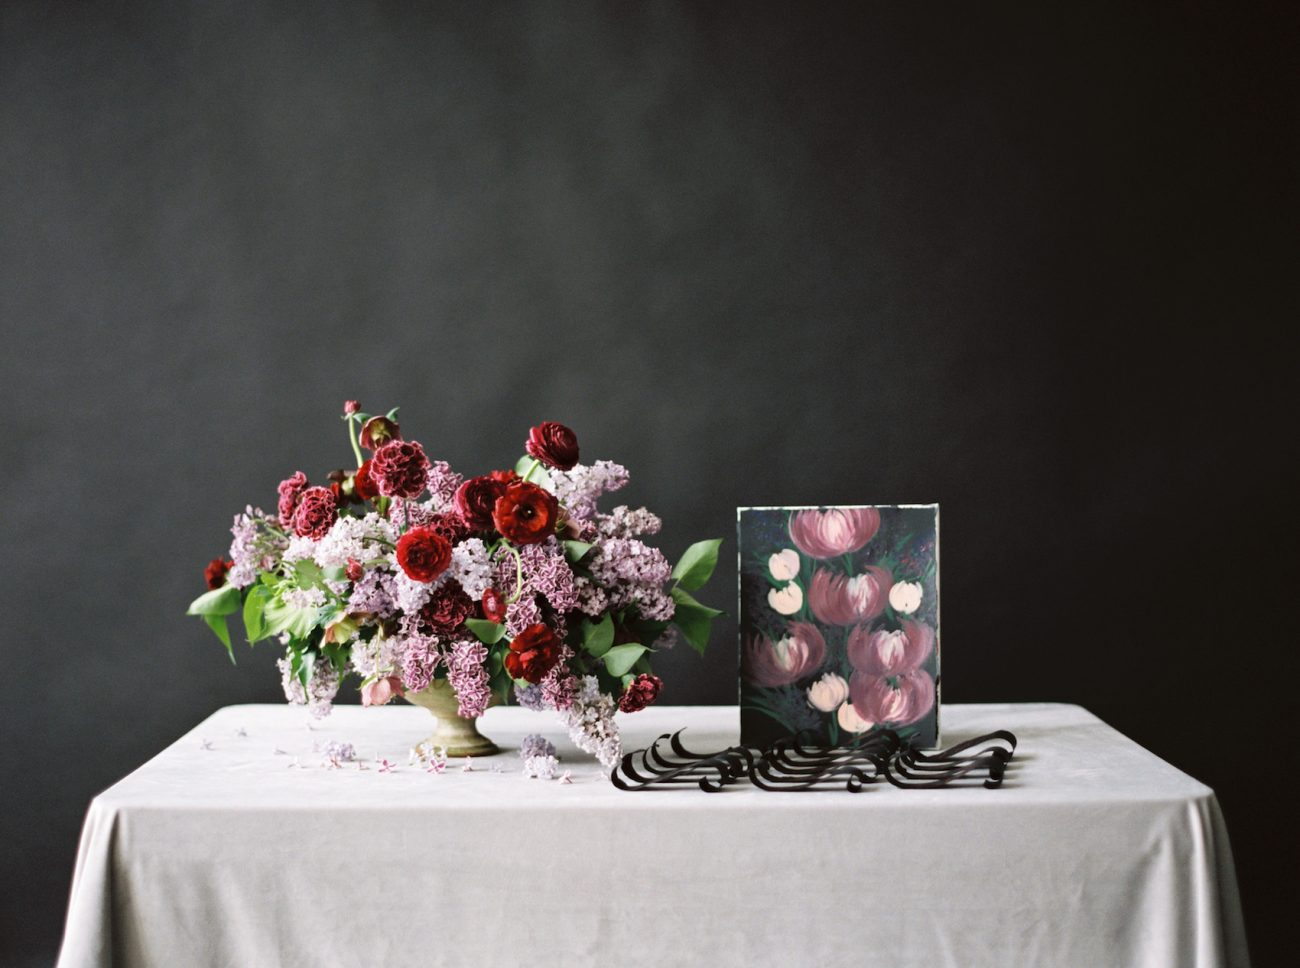 Moody Black Wedding Inspiration escort card table idea with flowers and art display